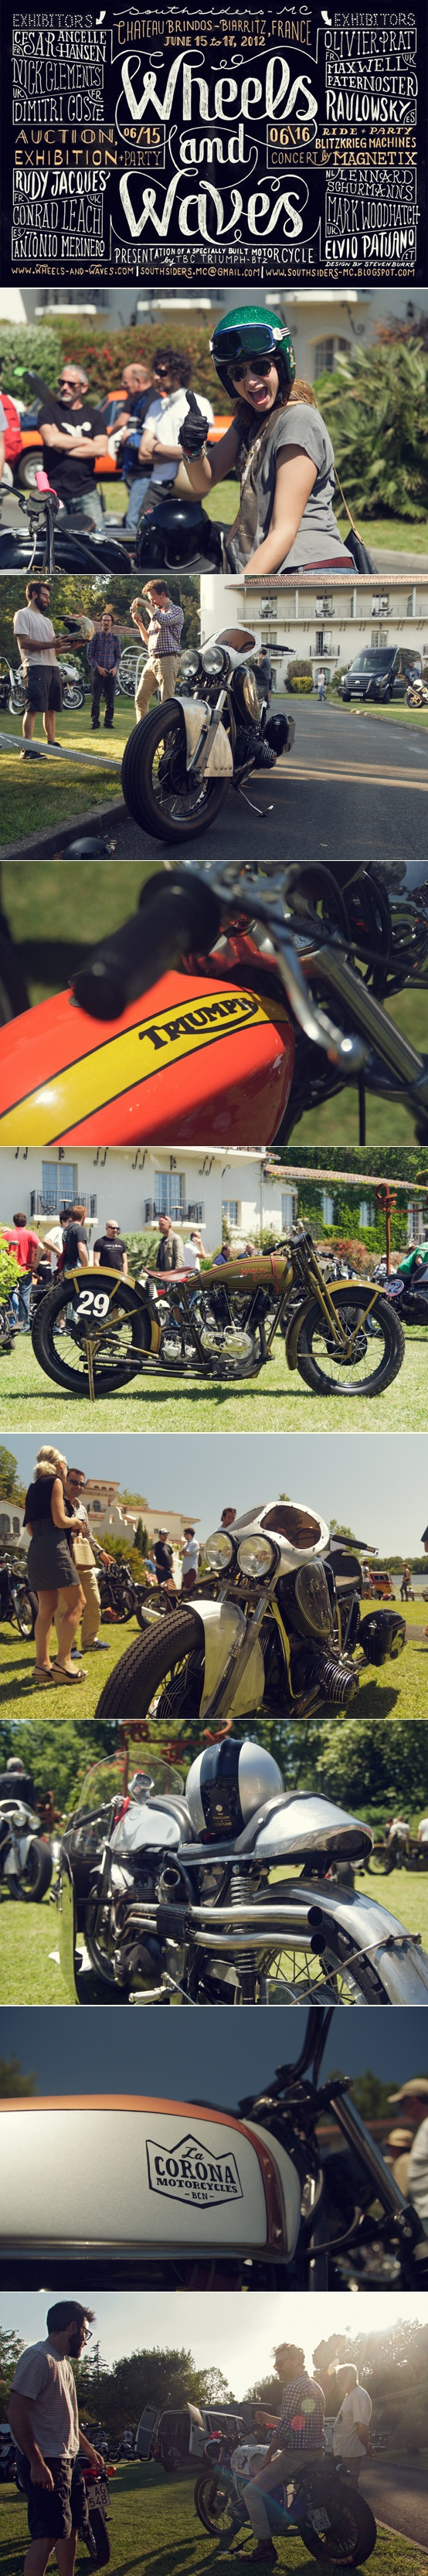 Photo highlights from the Wheels & Waves motorcycle show in Biarritz, France. Click through for more images: http://on.fb.me/wheels-waves